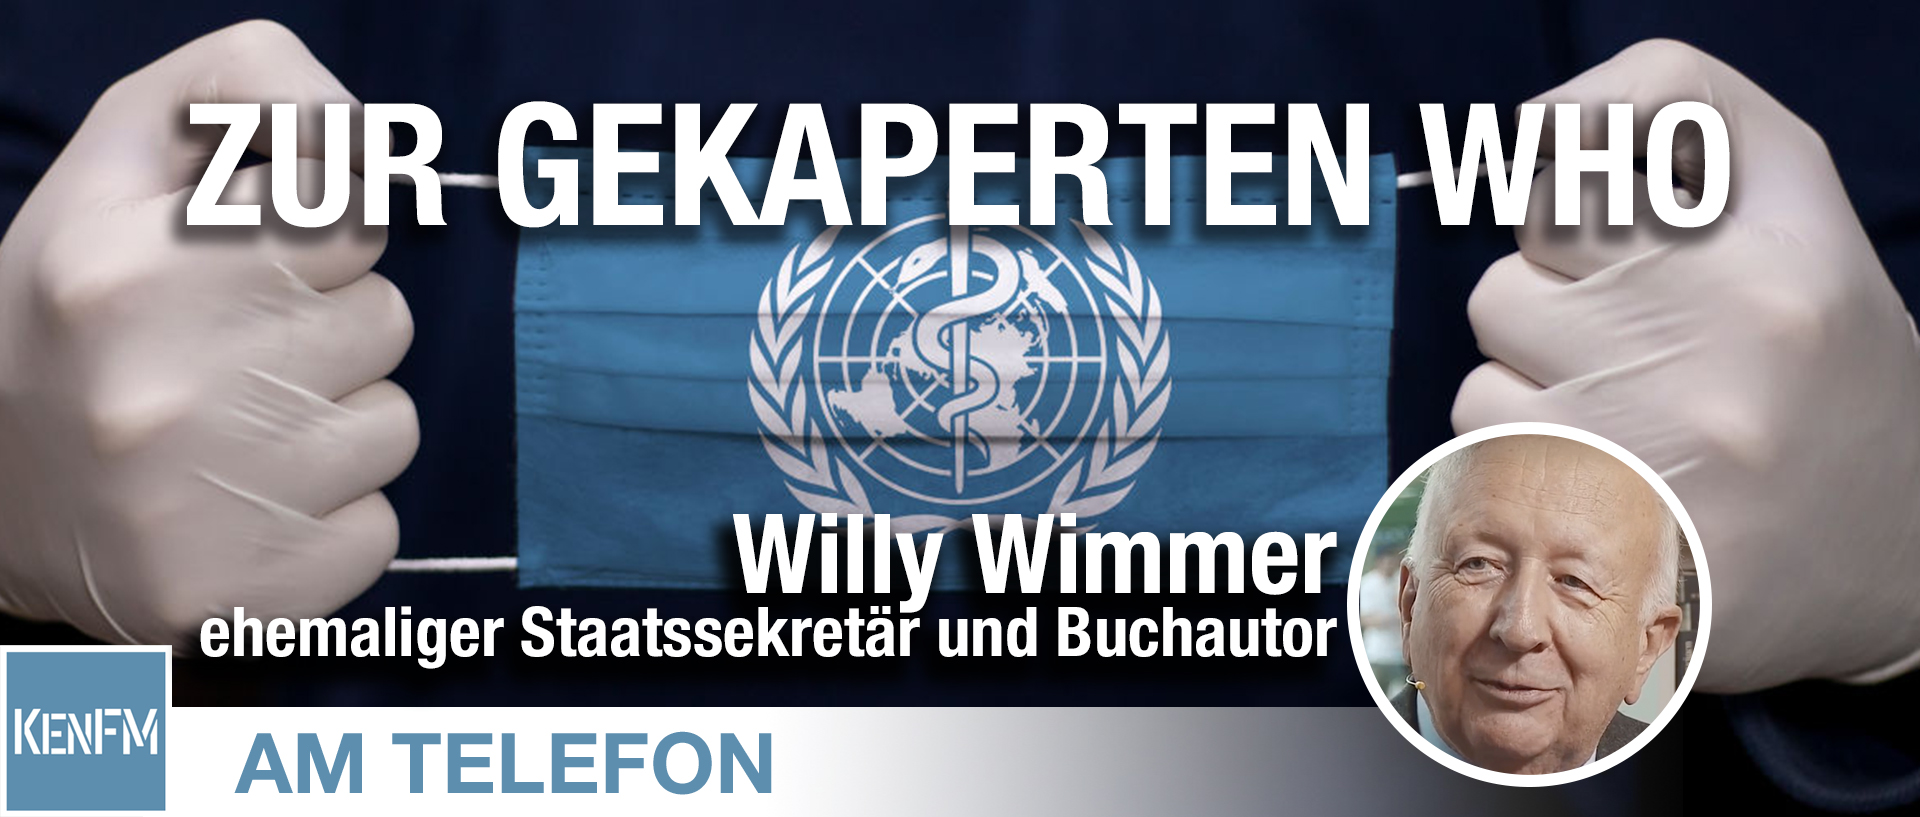 am-telefon-zur-gekaperten-who:-willy-wimmer-|-kenfm.de